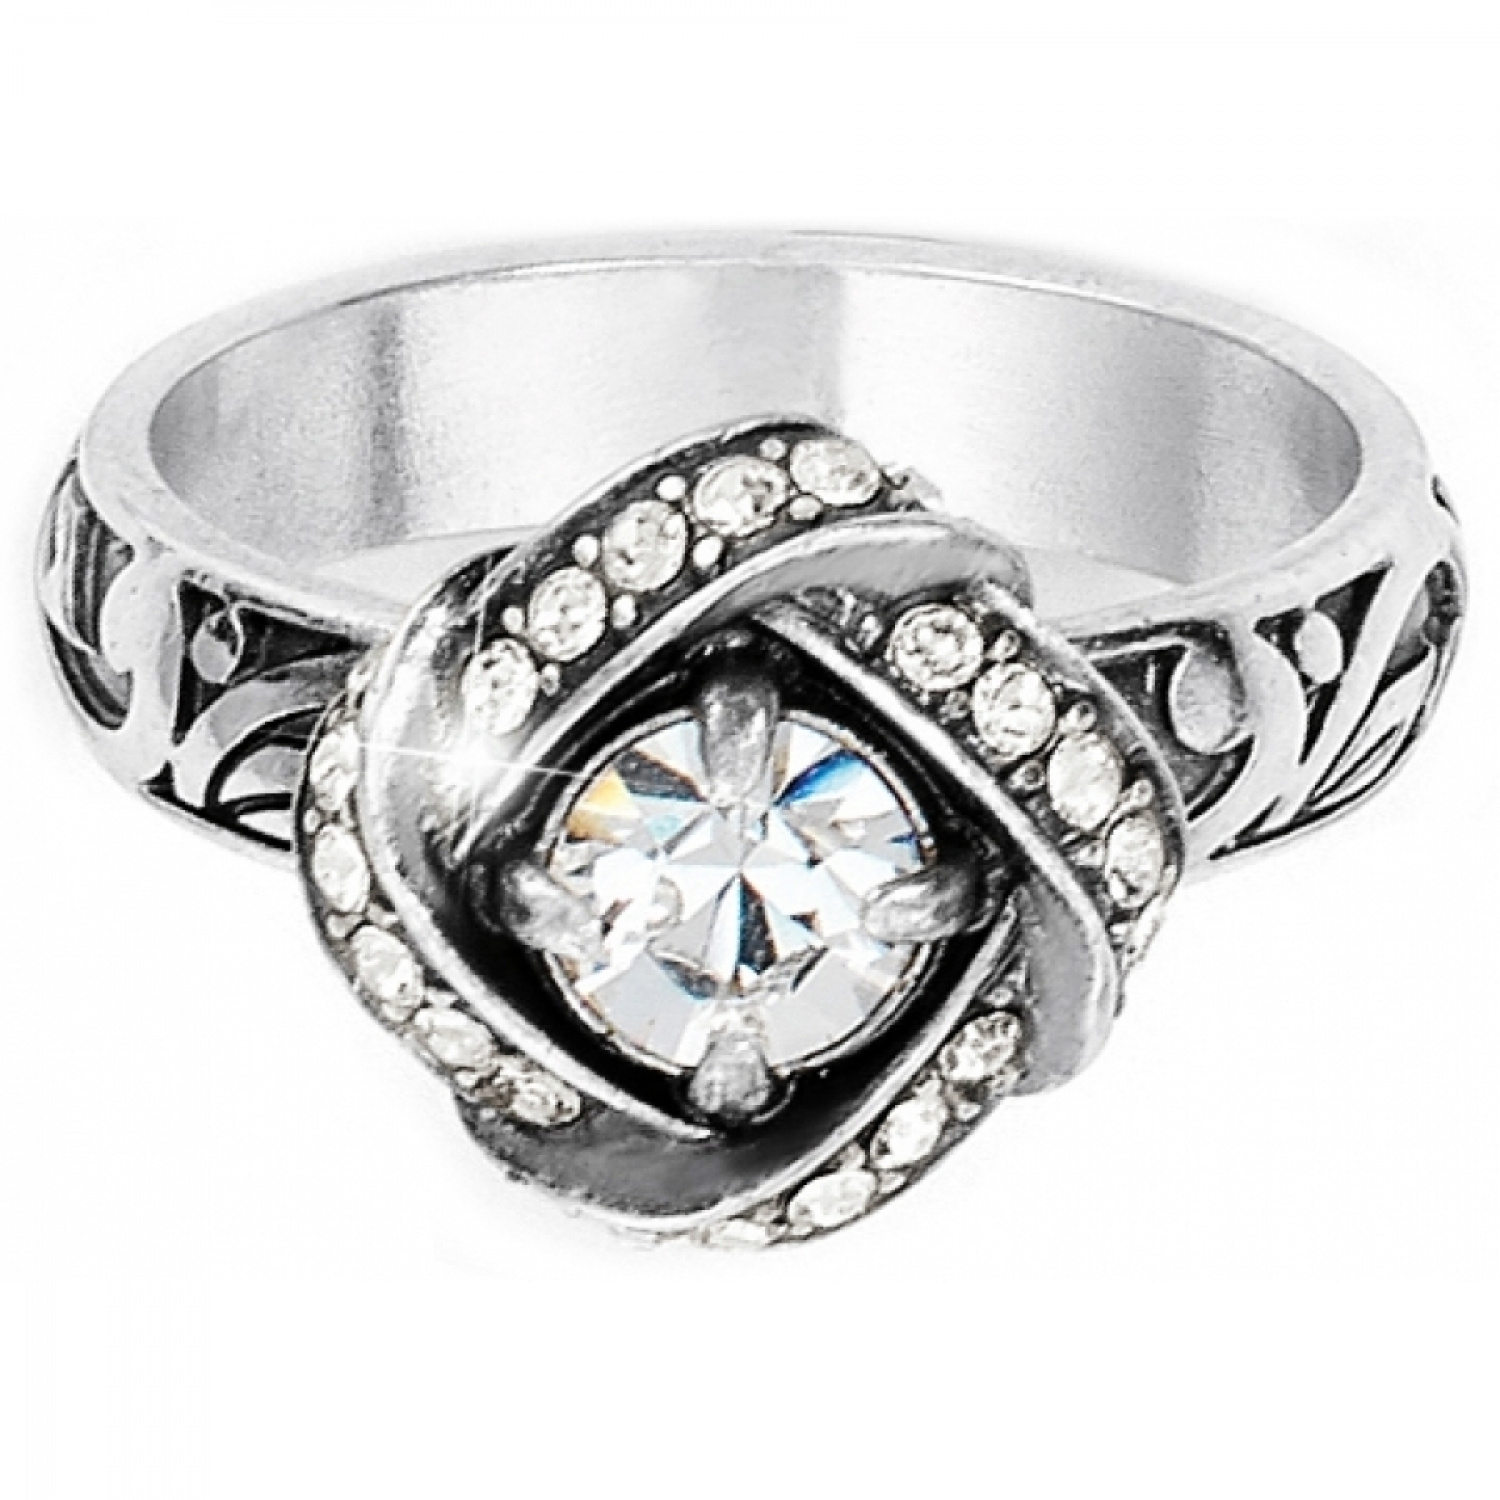 ring knot diamond everlon in sterling silver